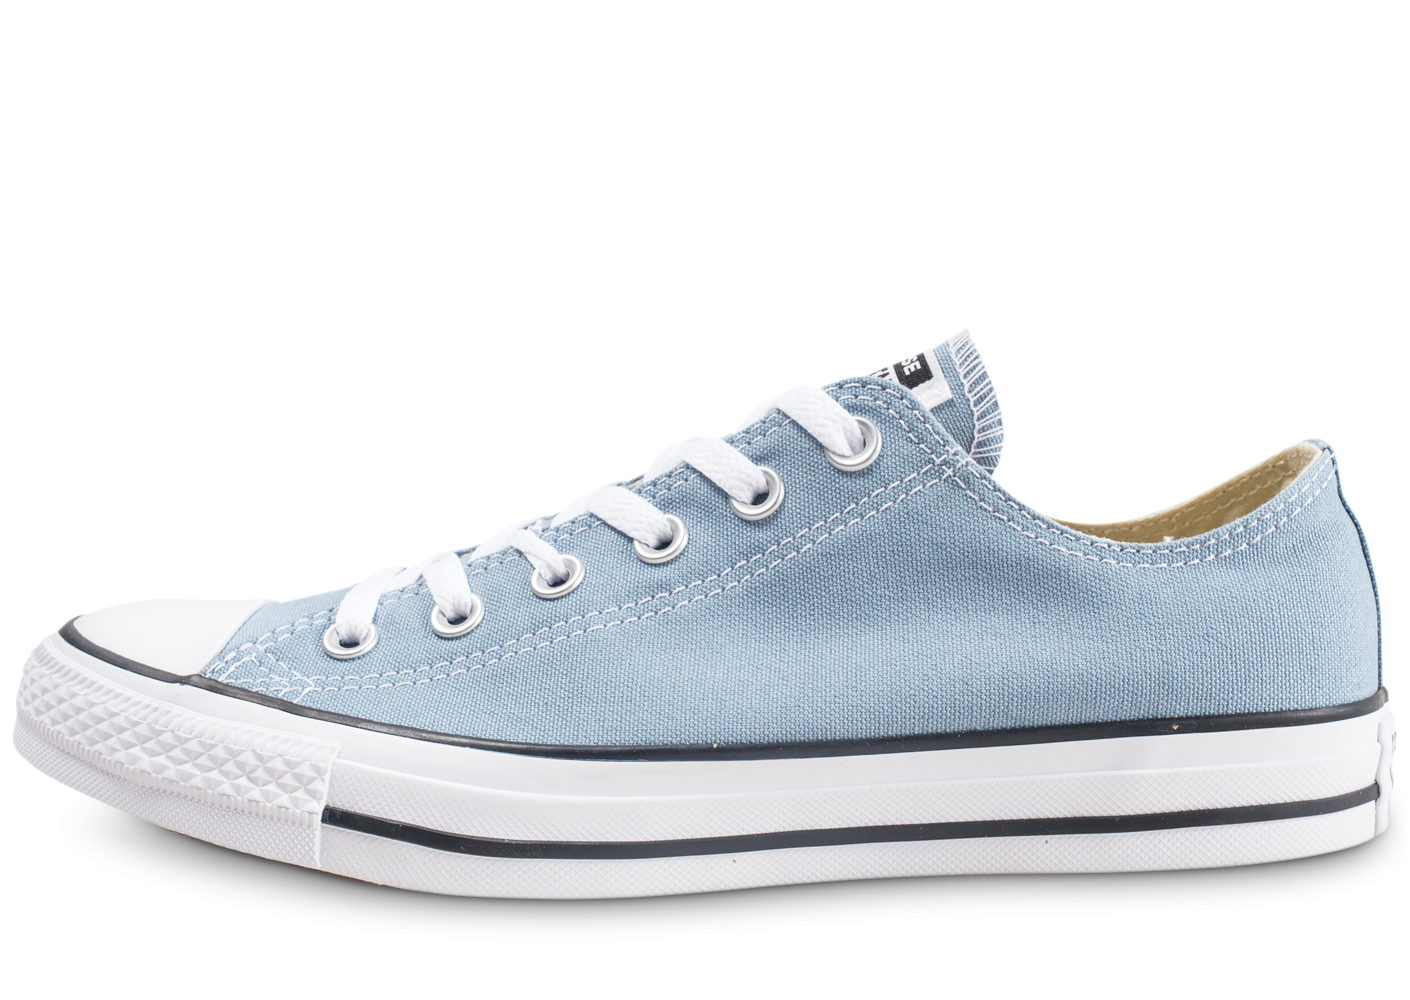 Converse Chuck Taylor All Star Low bleu clair